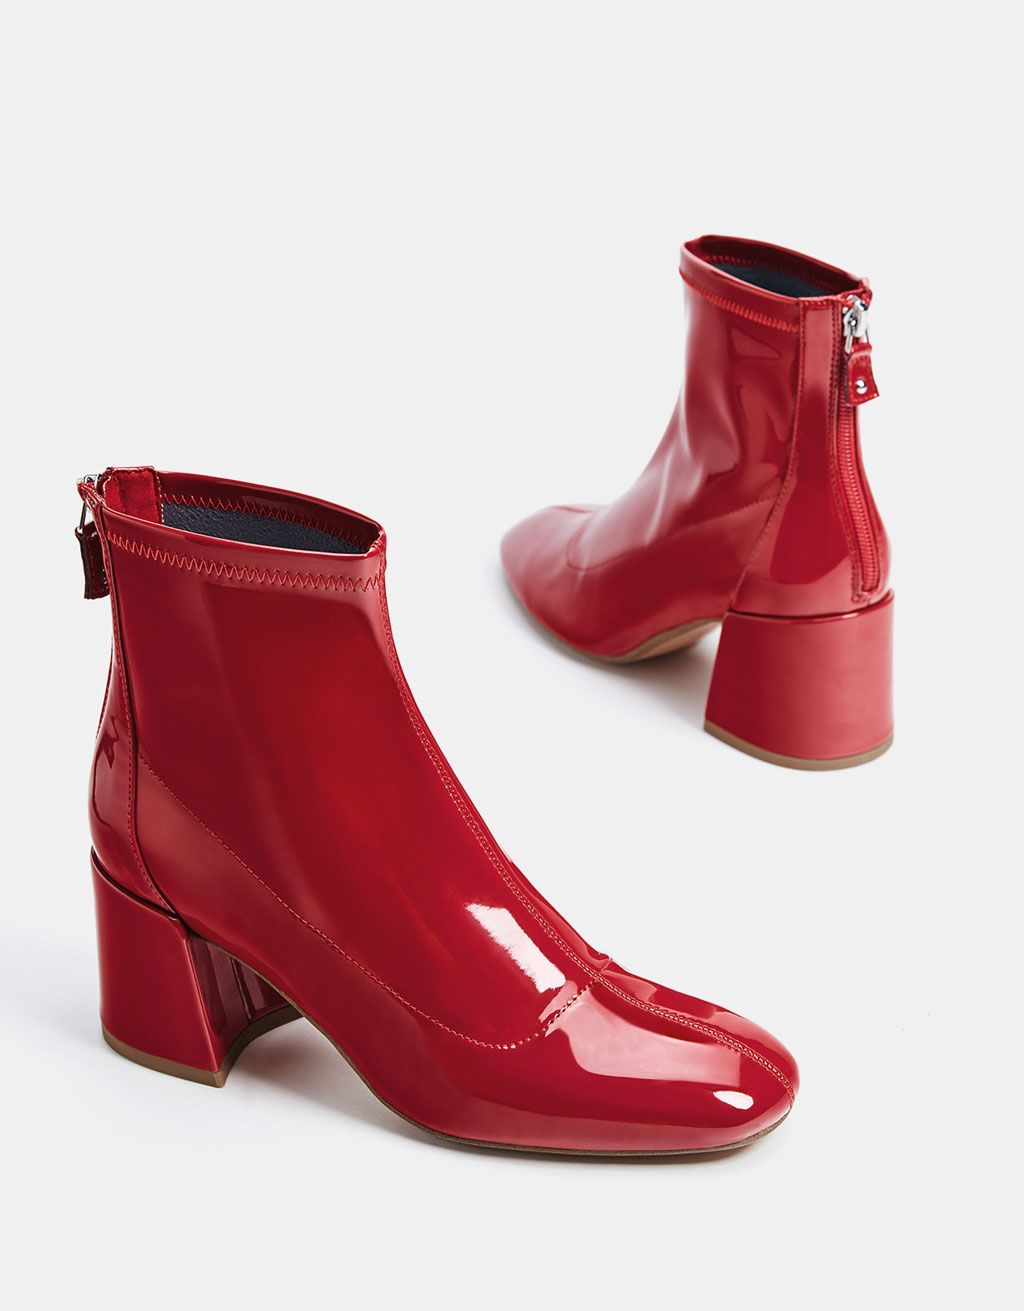 89de0e54b603 Bershka United States - Mid-heel ankle boots with a patent finish